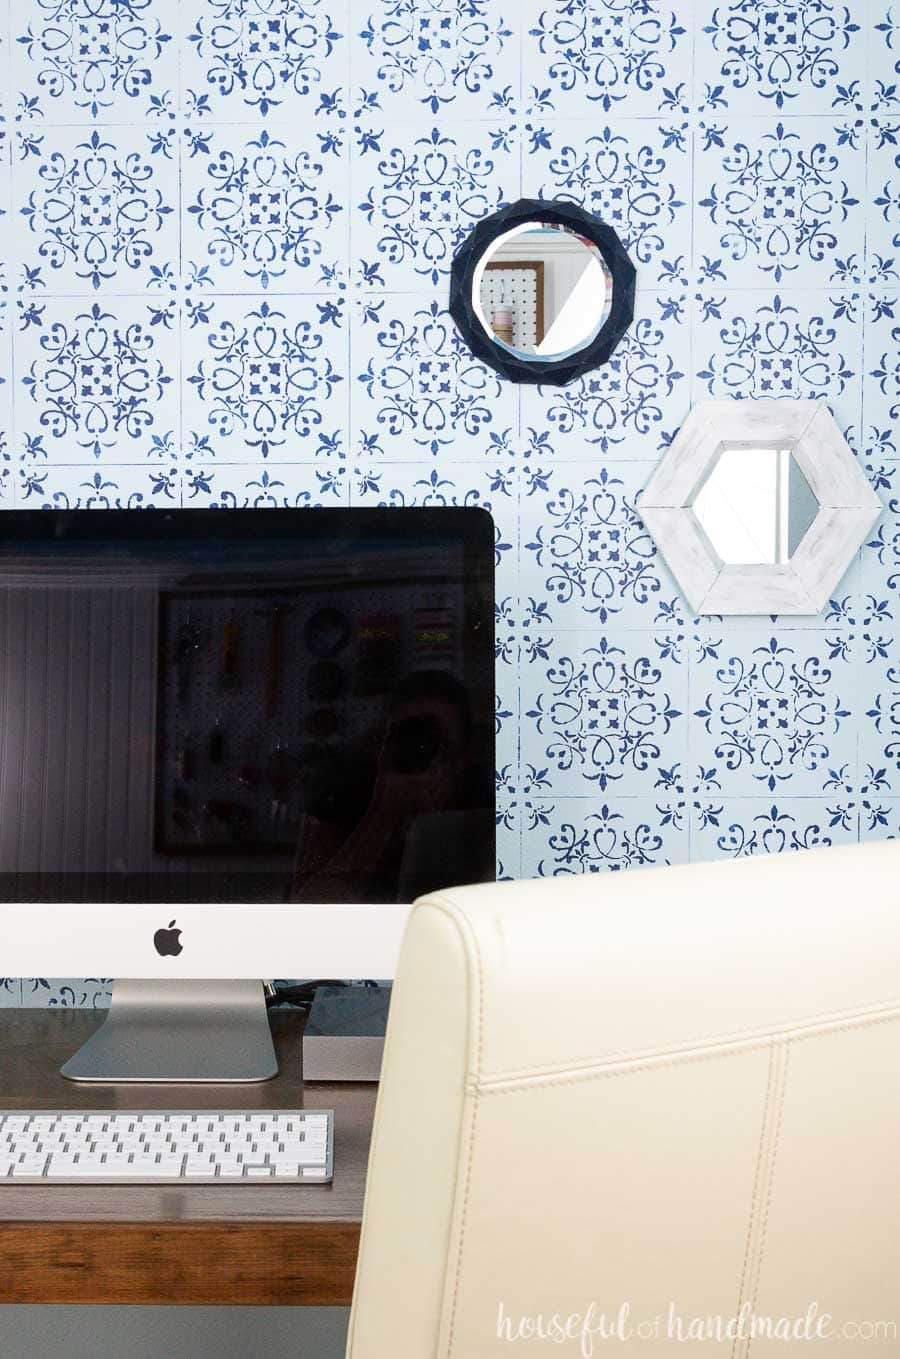 White rustic hexagon wall mirror and navy geometric mirror on a wall behind a computer.